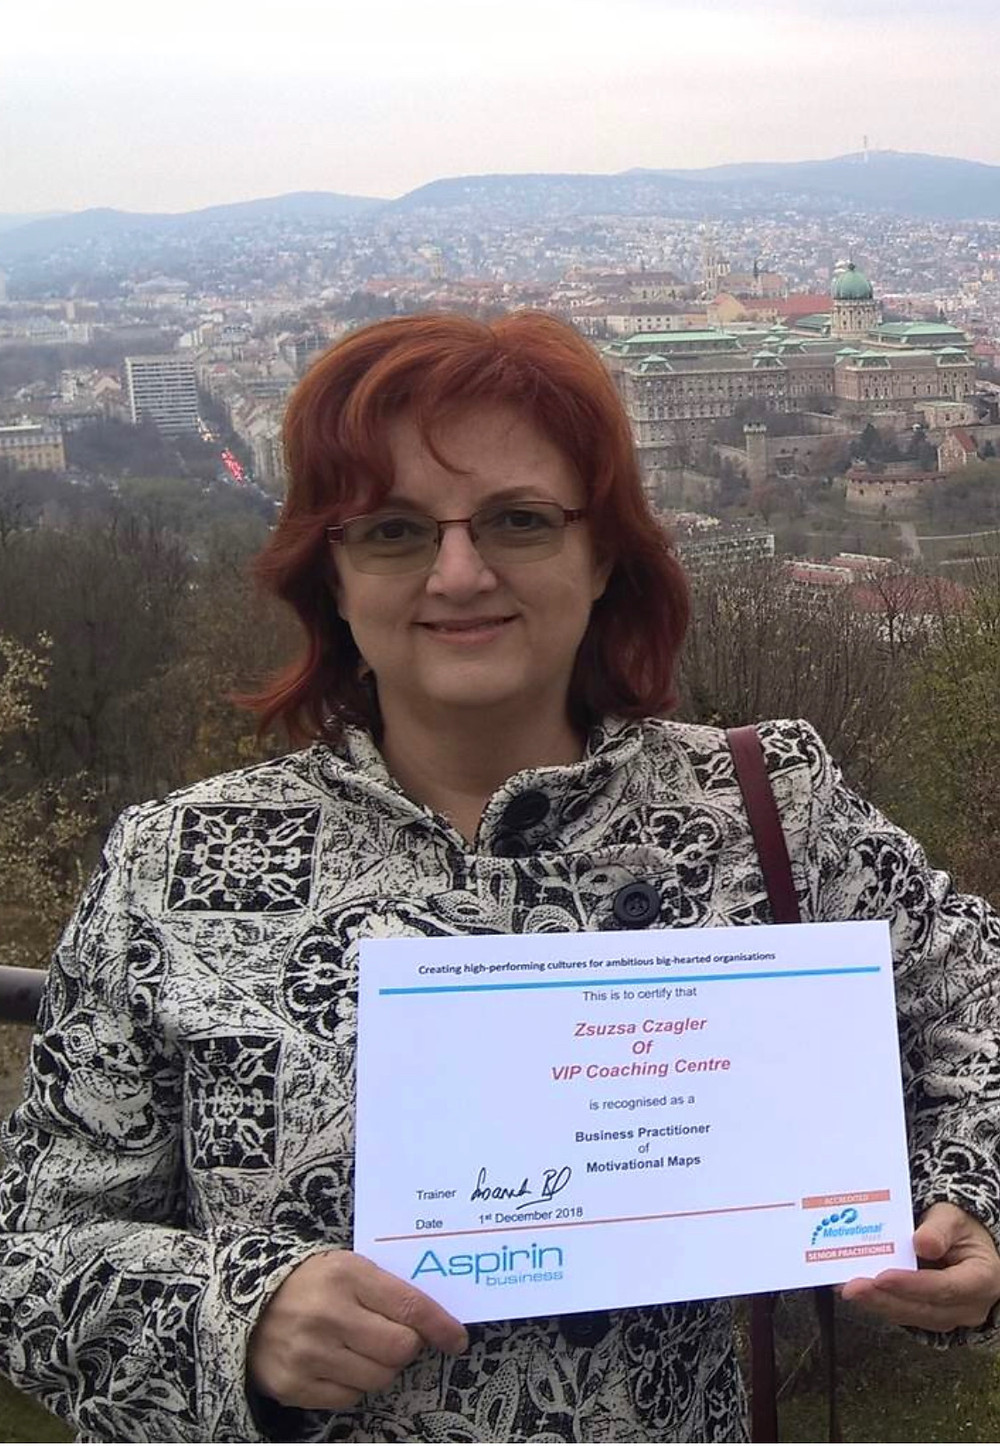 Licensed Business Practitioner - Motivational Map in Hungary